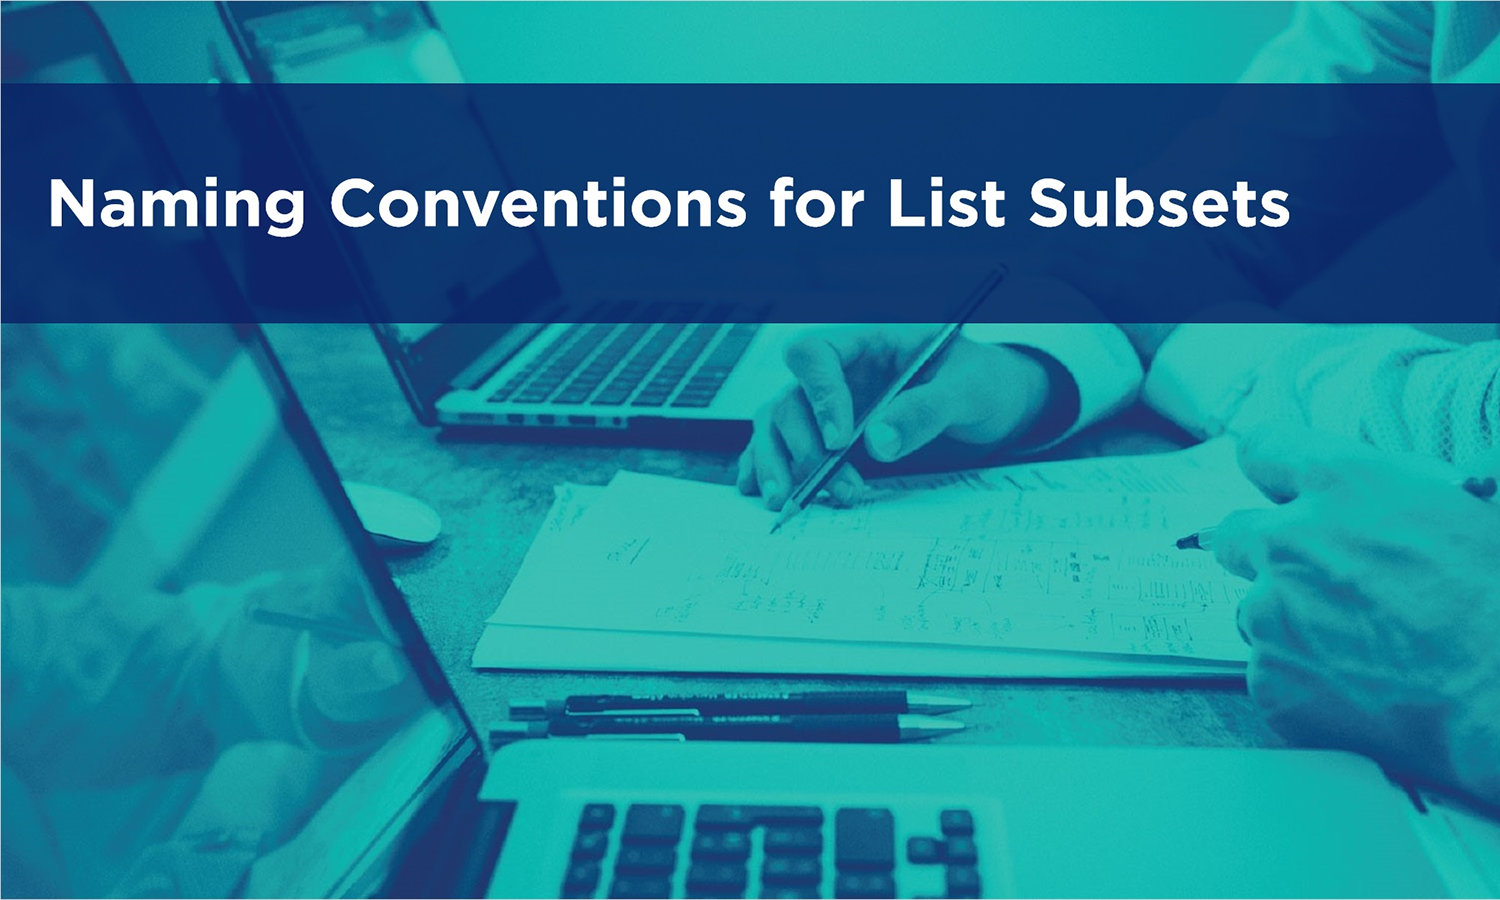 Naming Conventions for List Subsets